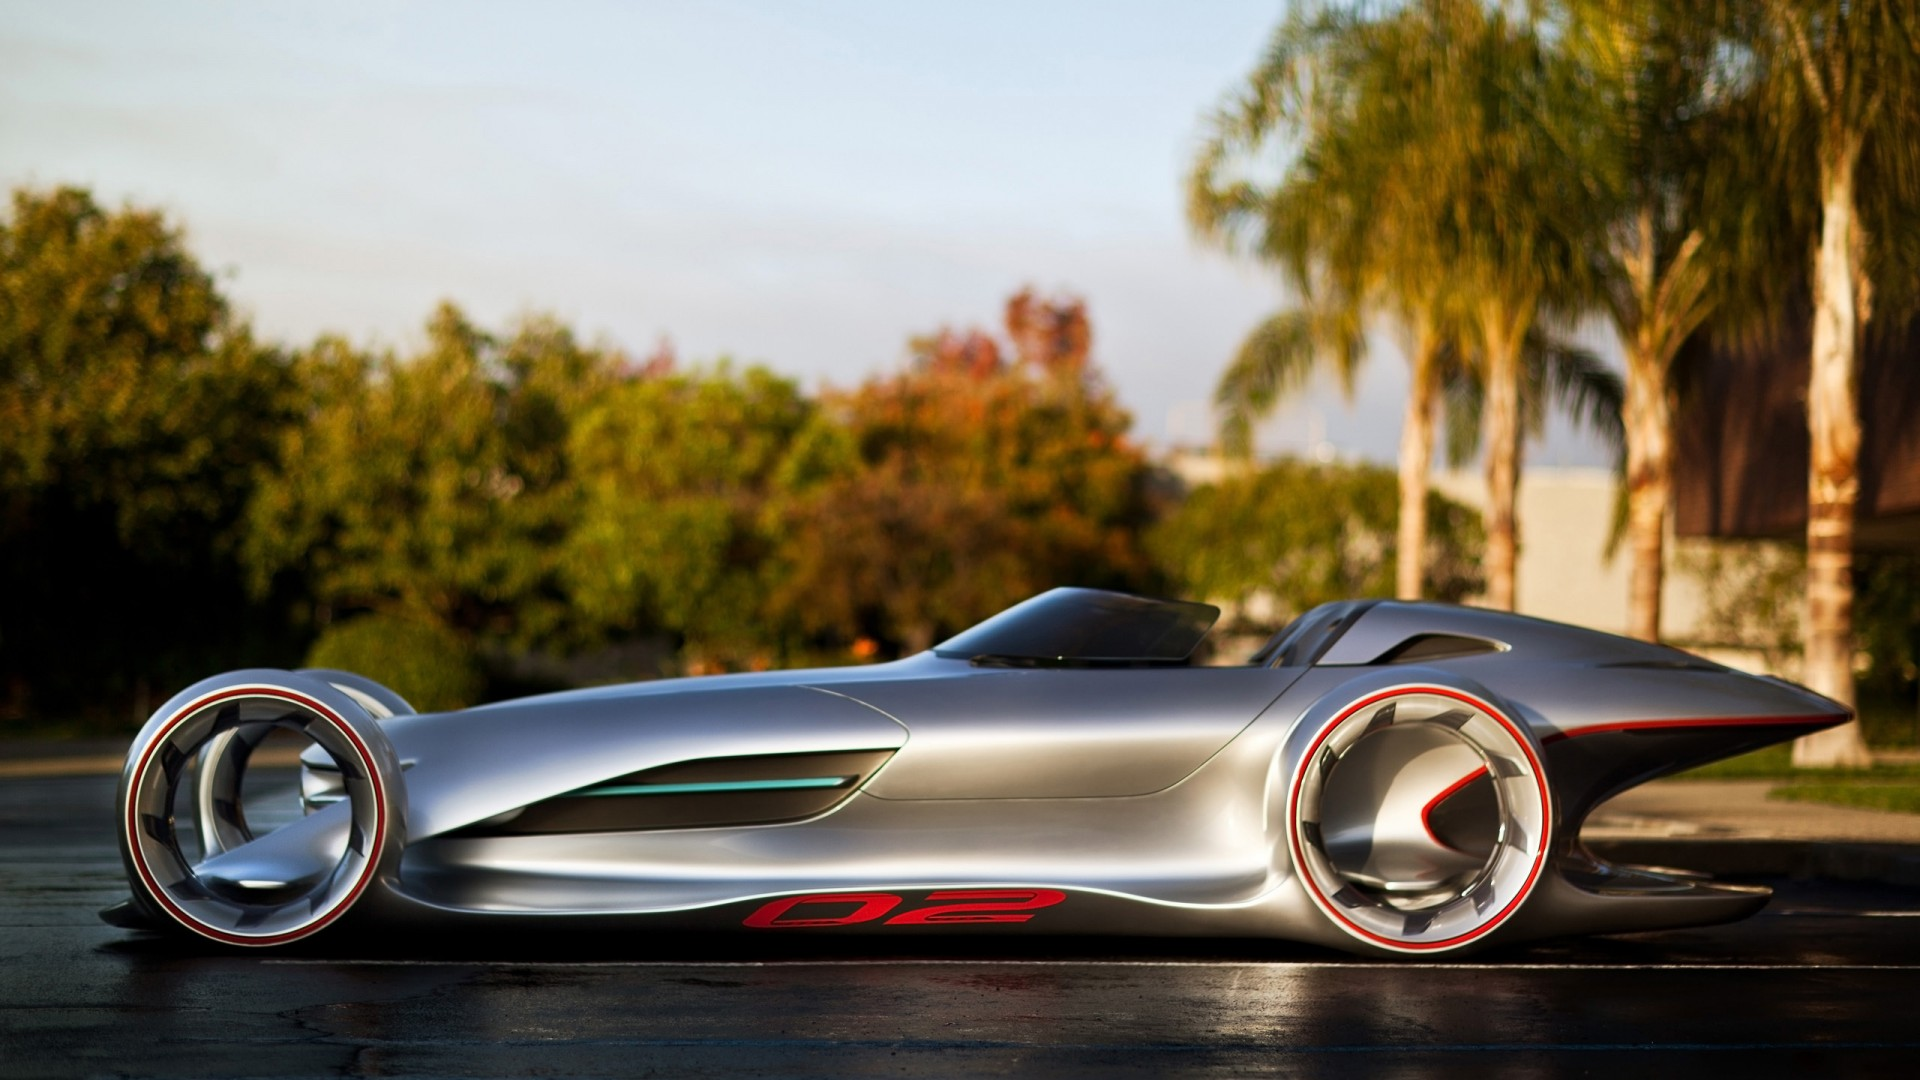 Mercedes Benz Silver Arrow Concept 2011 Wallpaper Hd Car